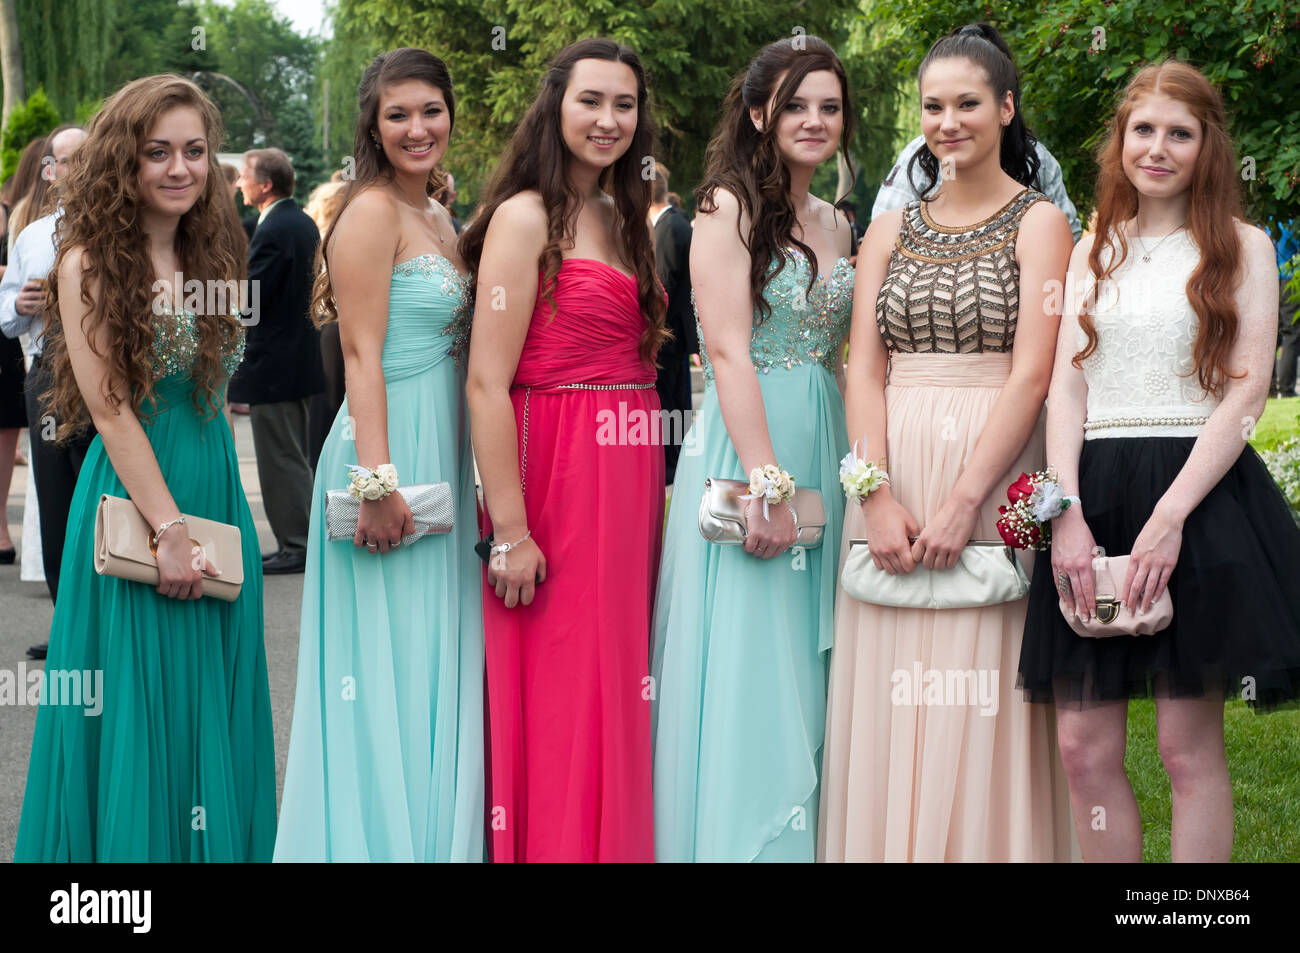 Stunning Suite Life On Deck Prom Ideas - Wedding Ideas - memiocall.com